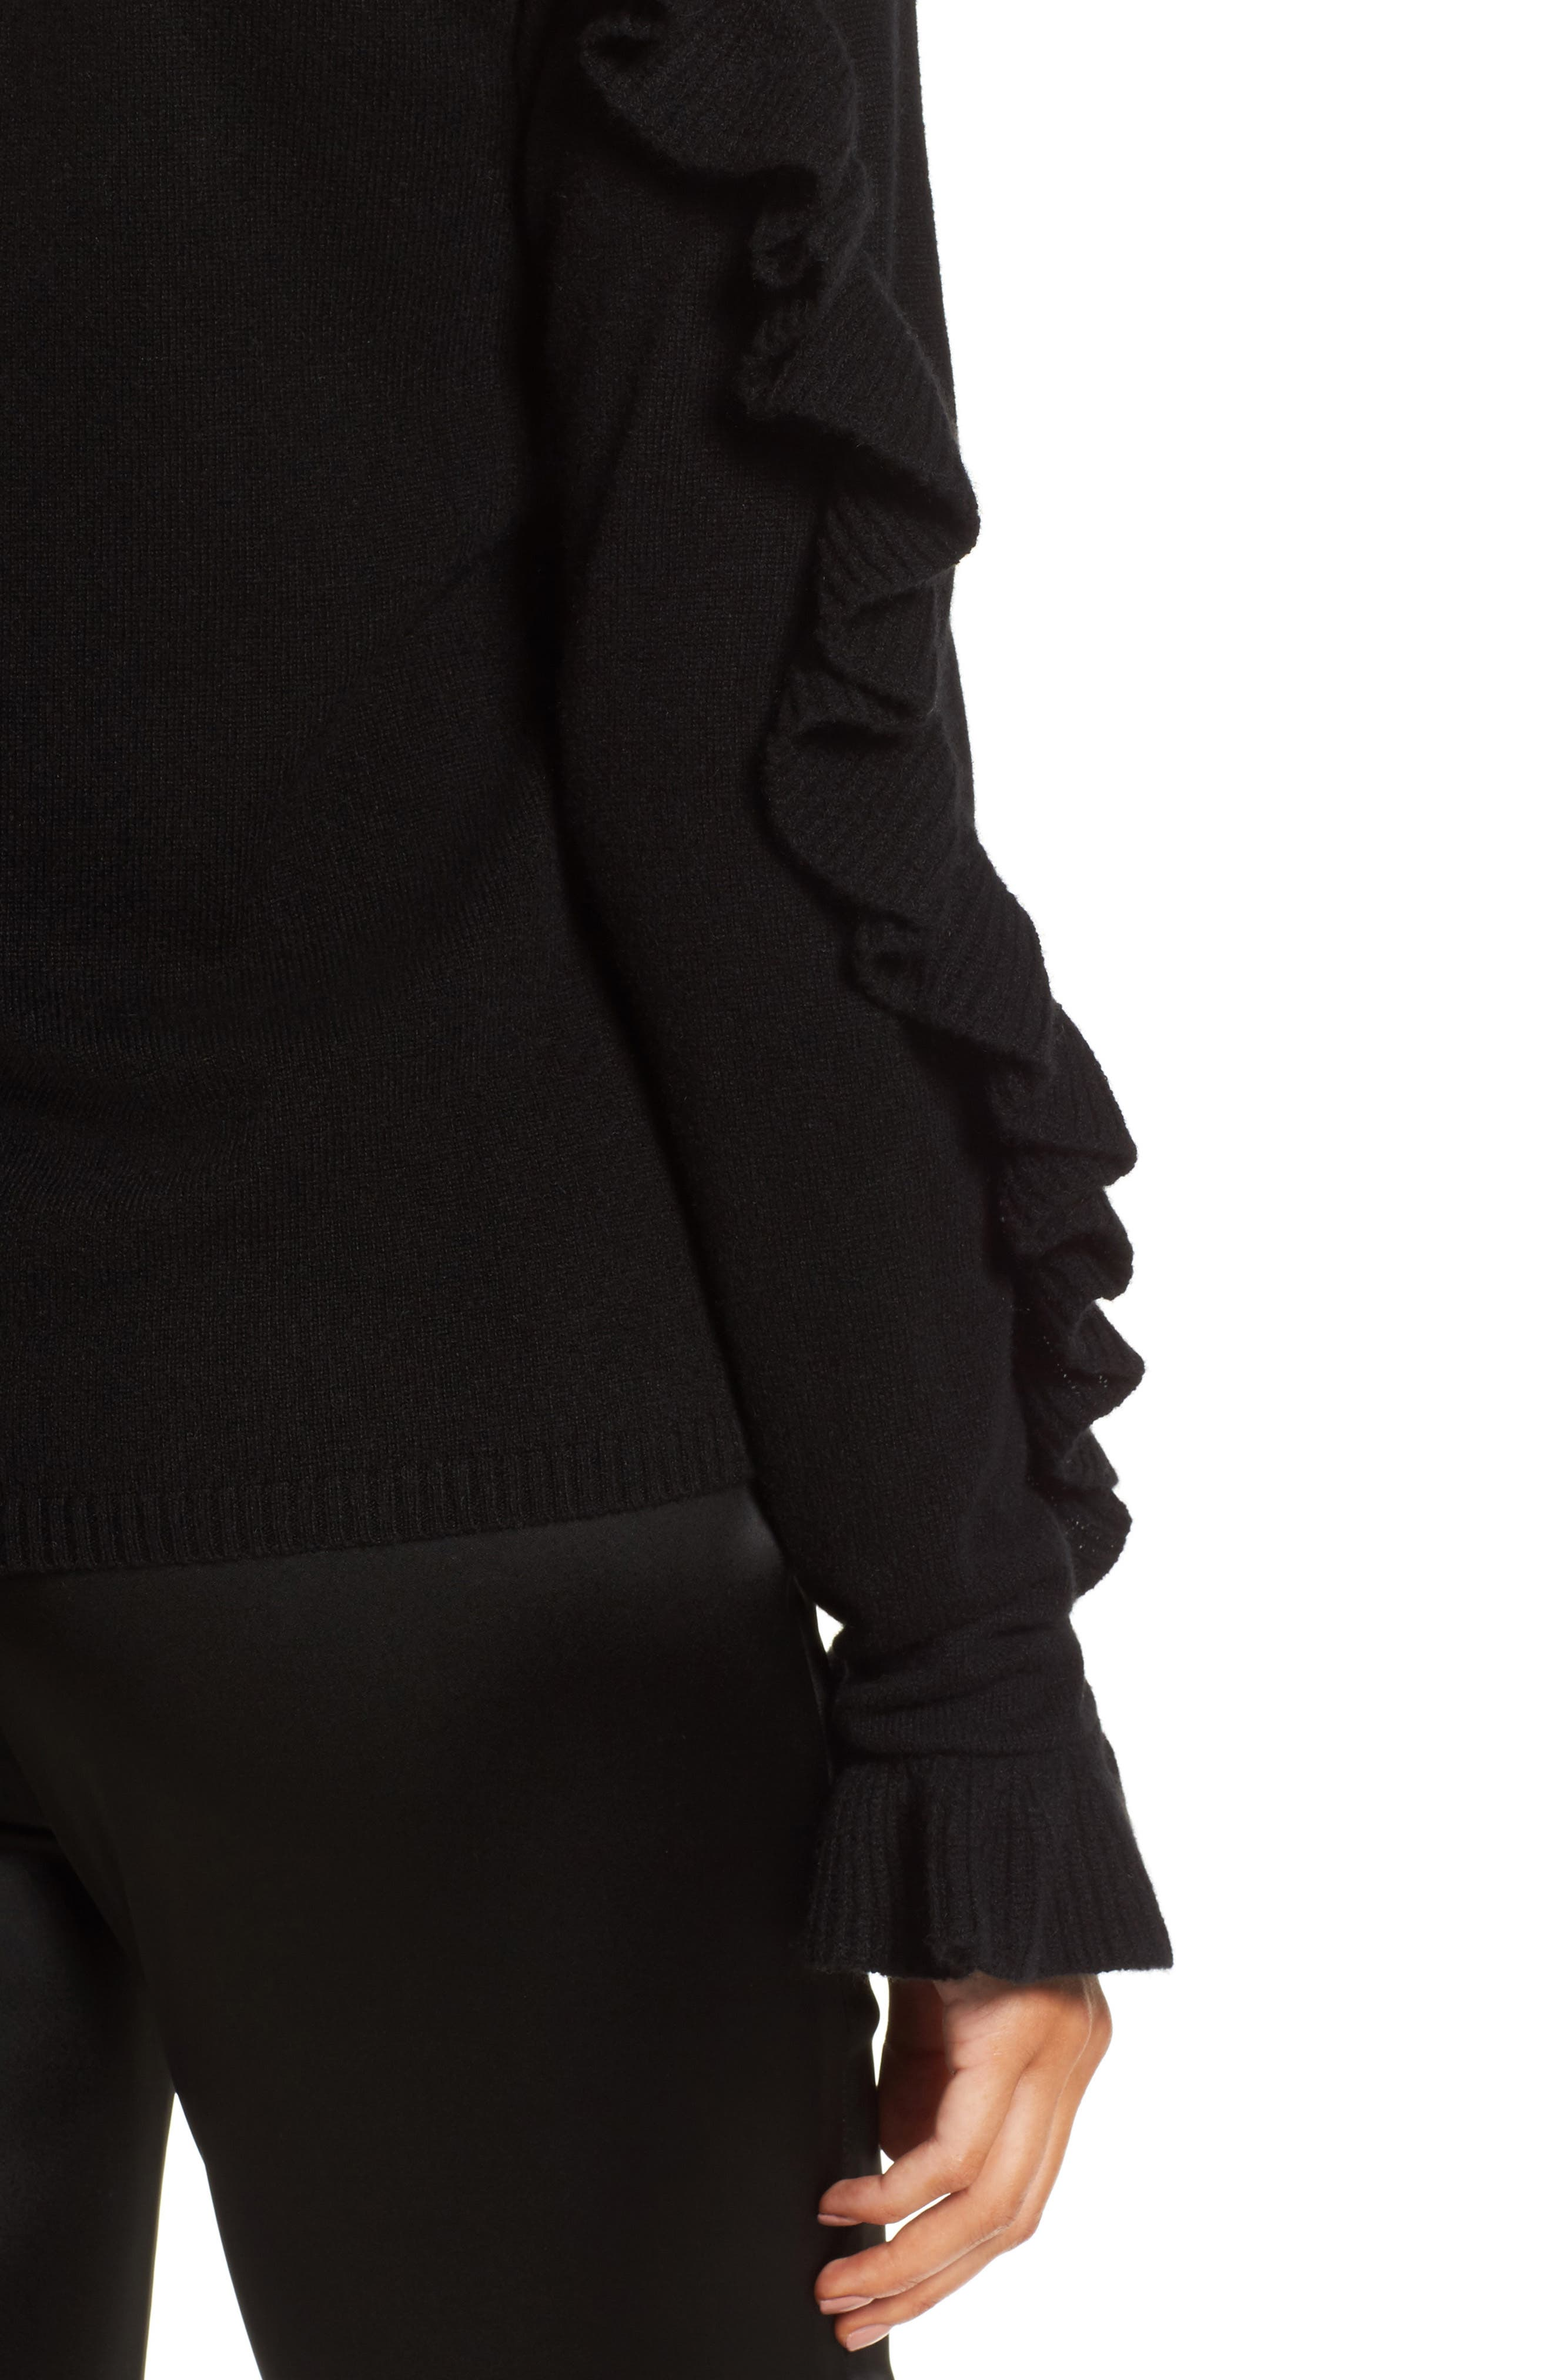 Ruffle Sleeve Cashmere Sweater,                             Alternate thumbnail 7, color,